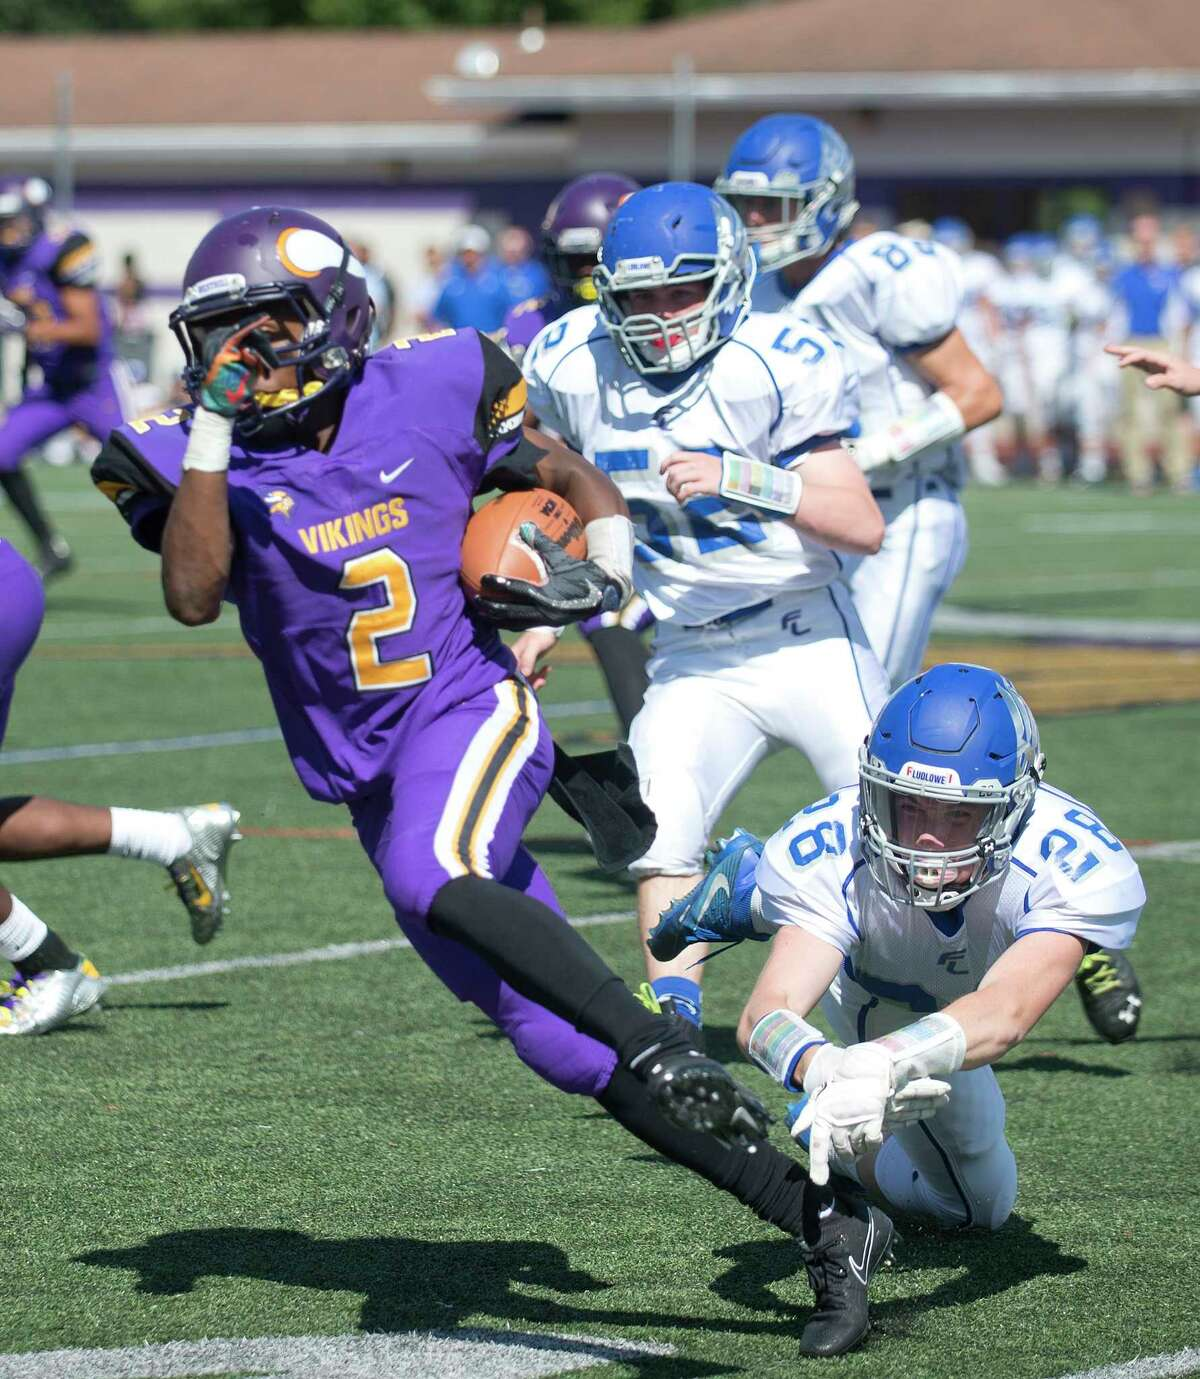 Westhill's Noldylens Metayer avoids being tackled by Fairfield Ludlowe's Jake Simonelli during Saturday's football game at Westhill High School in Stamford, Conn., on September 9, 2017.